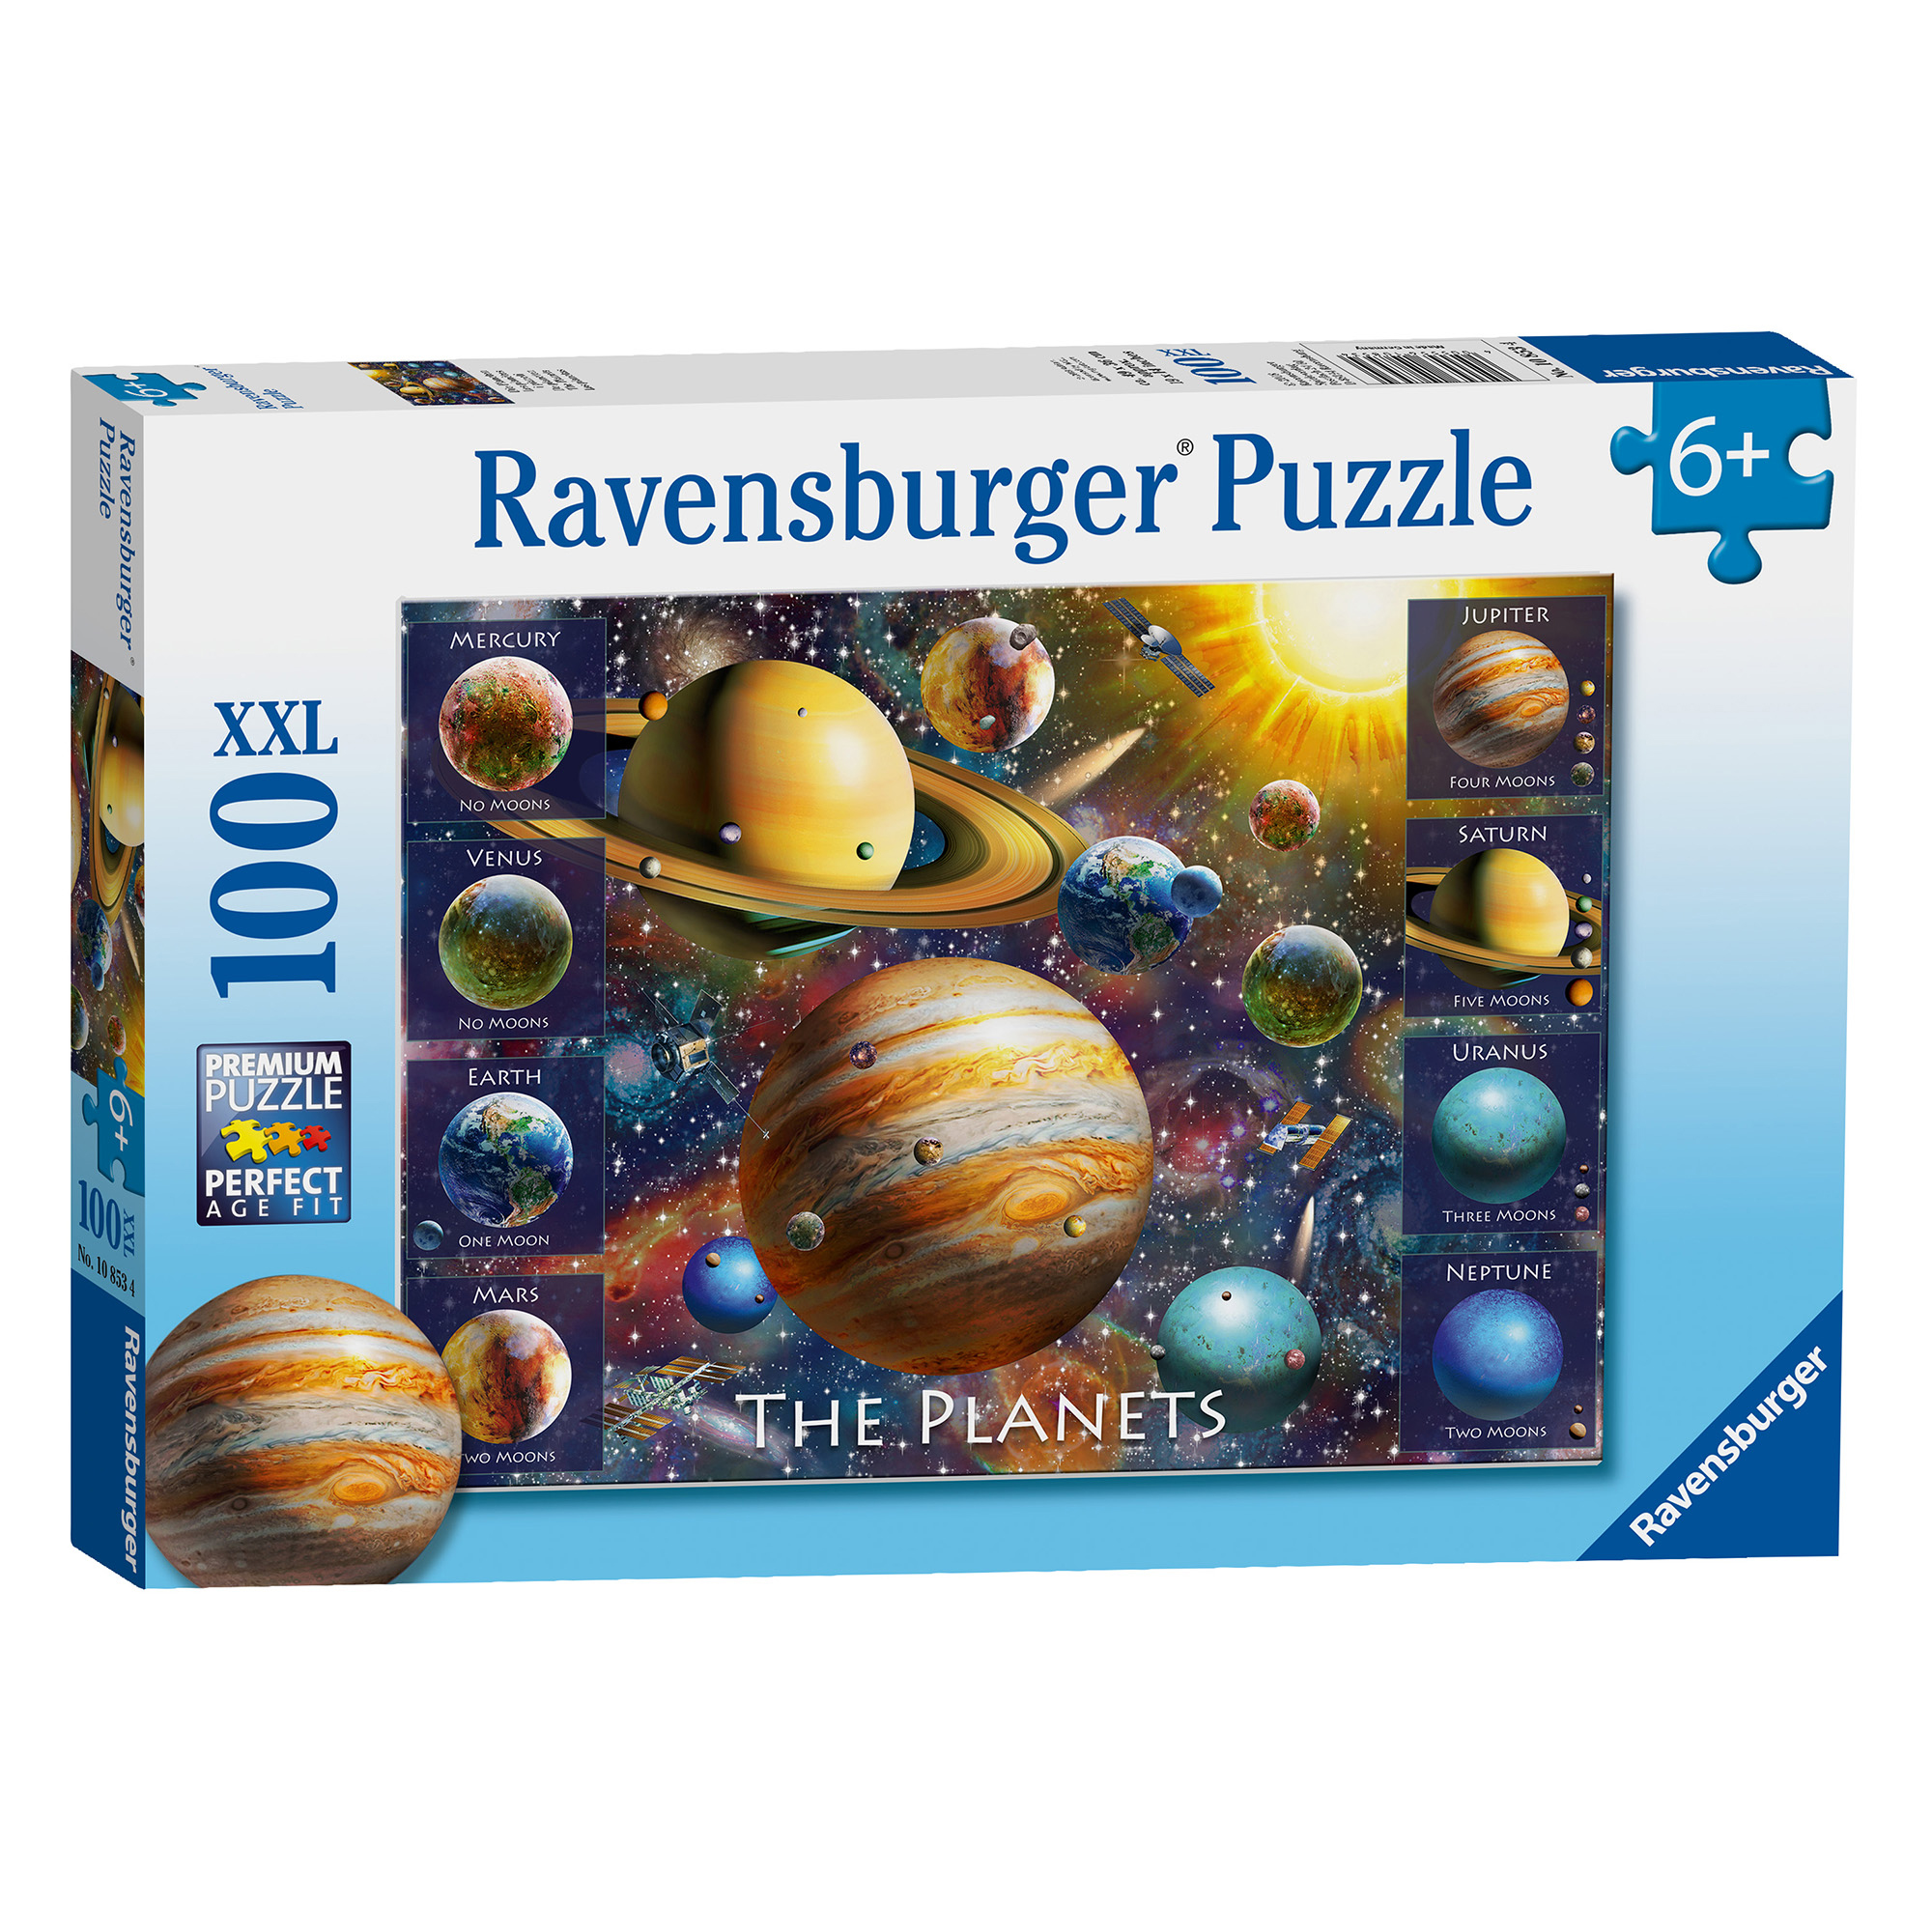 Ravensburger The Planets 100 Piece XXL Puzzle